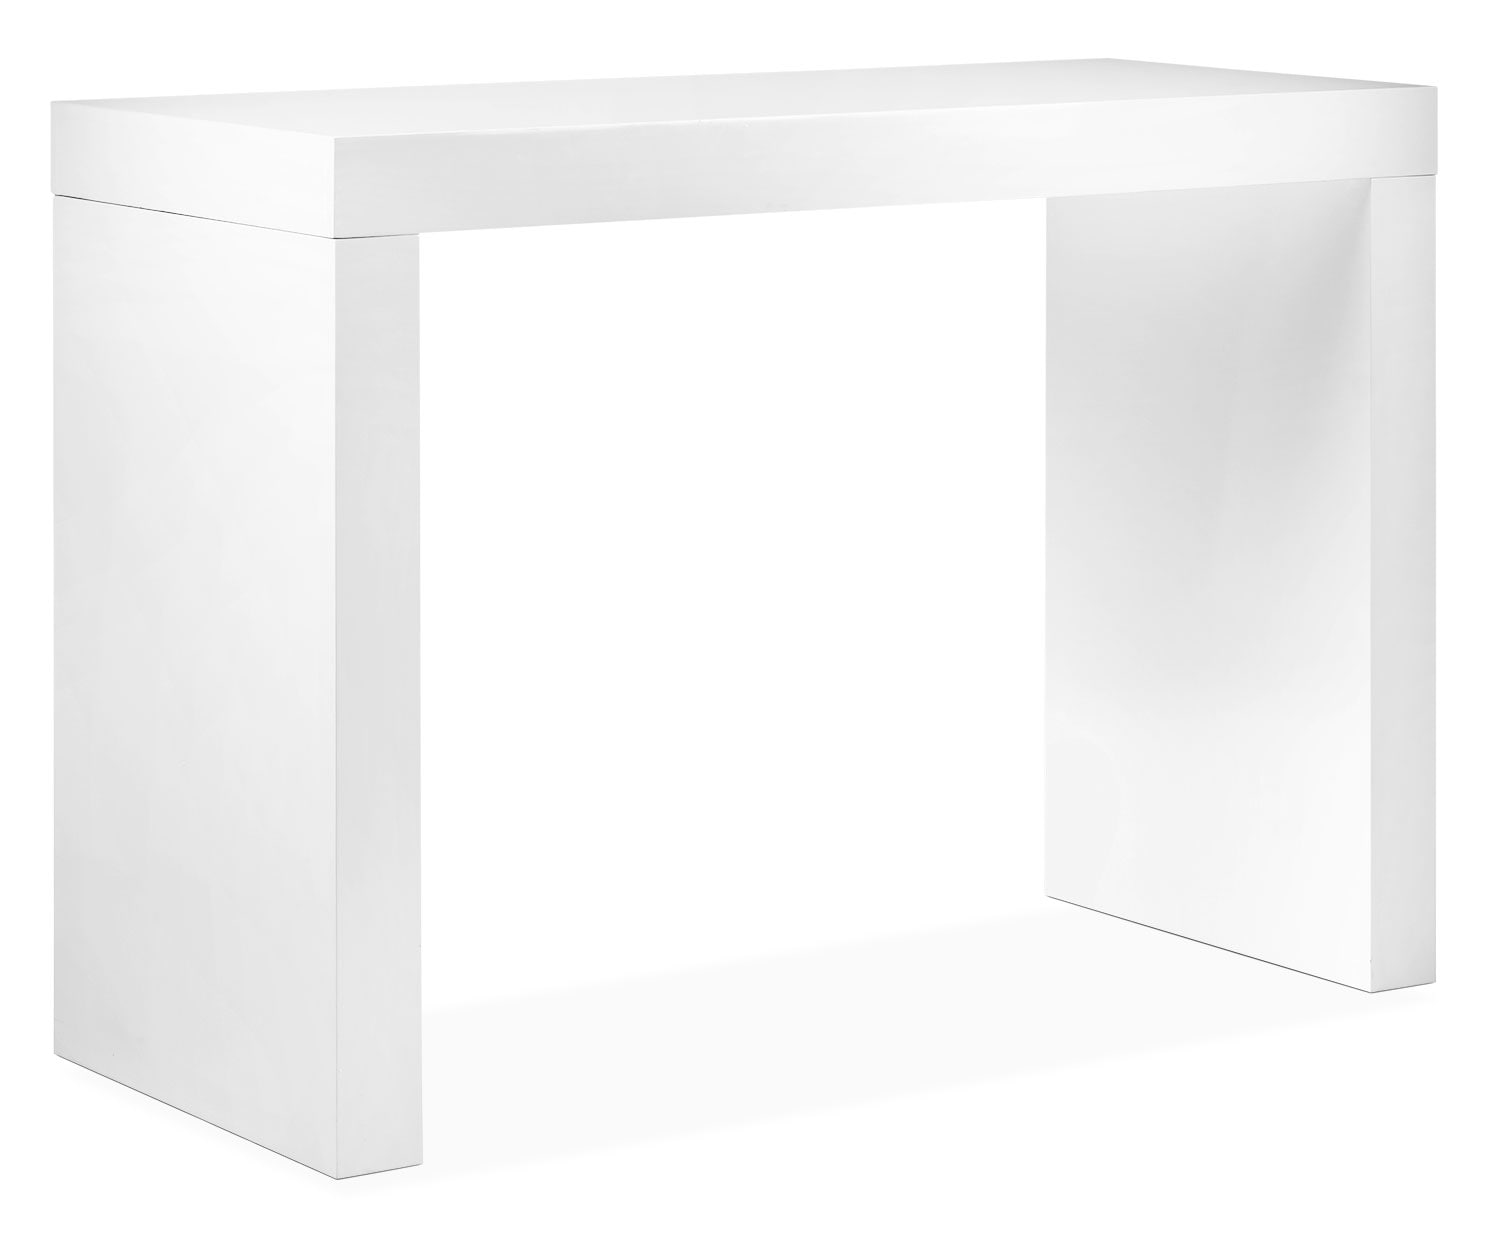 emile bar table  white  leon's -  bar table  white hover to zoom